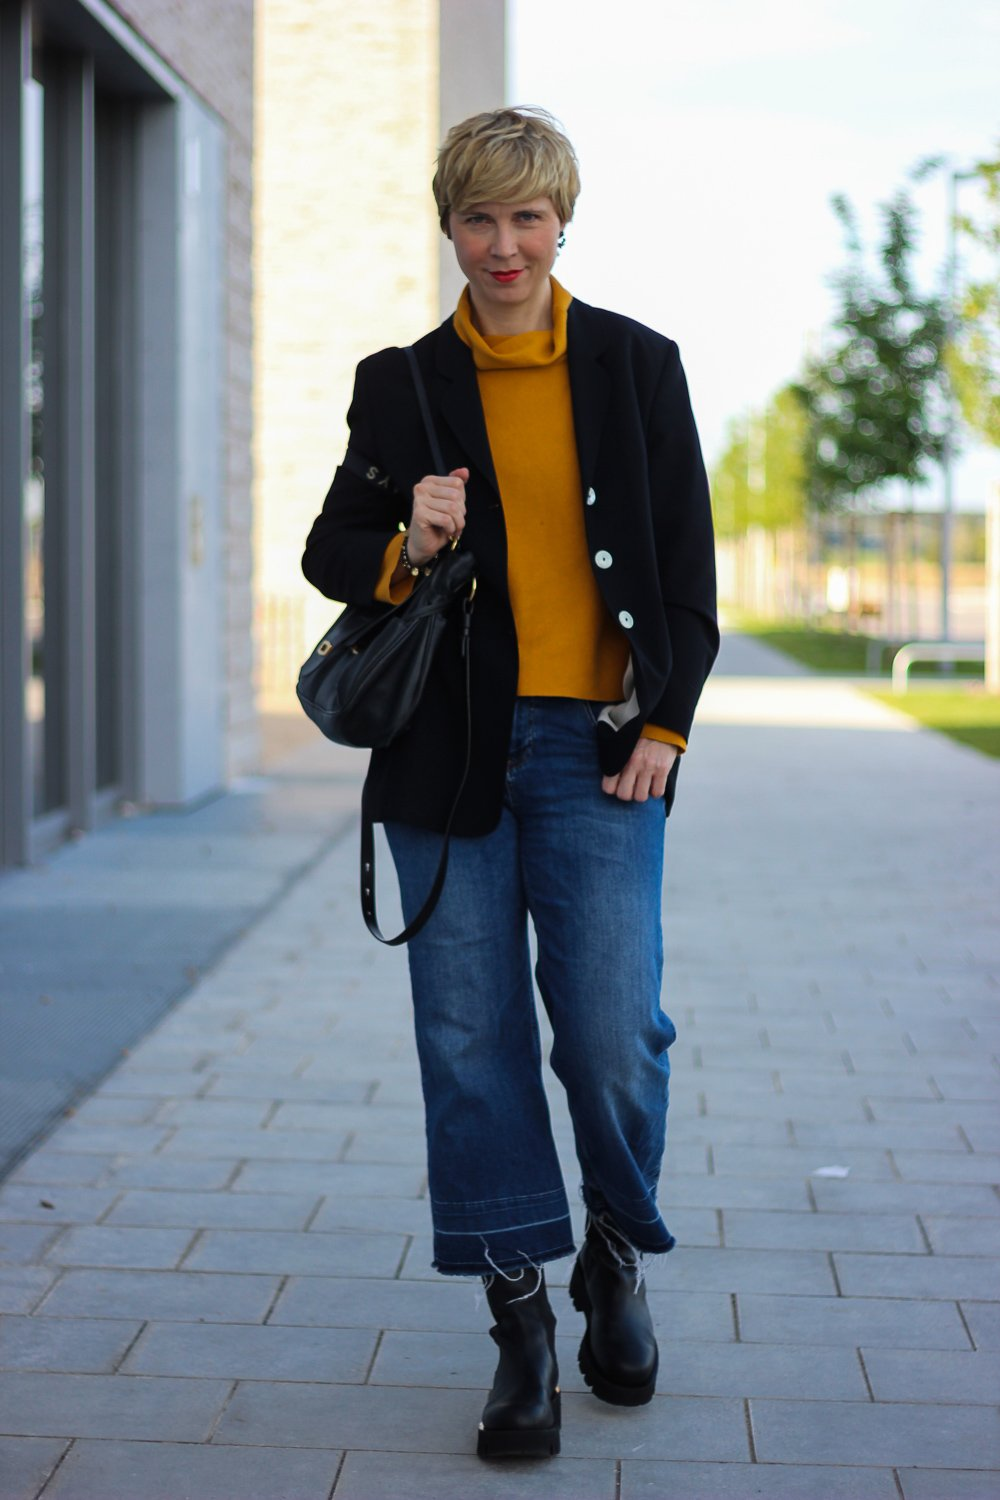 conny doll lifestyle: Herbstlook, curry Pullover, neyo. Blazer, Chunky-Boots,